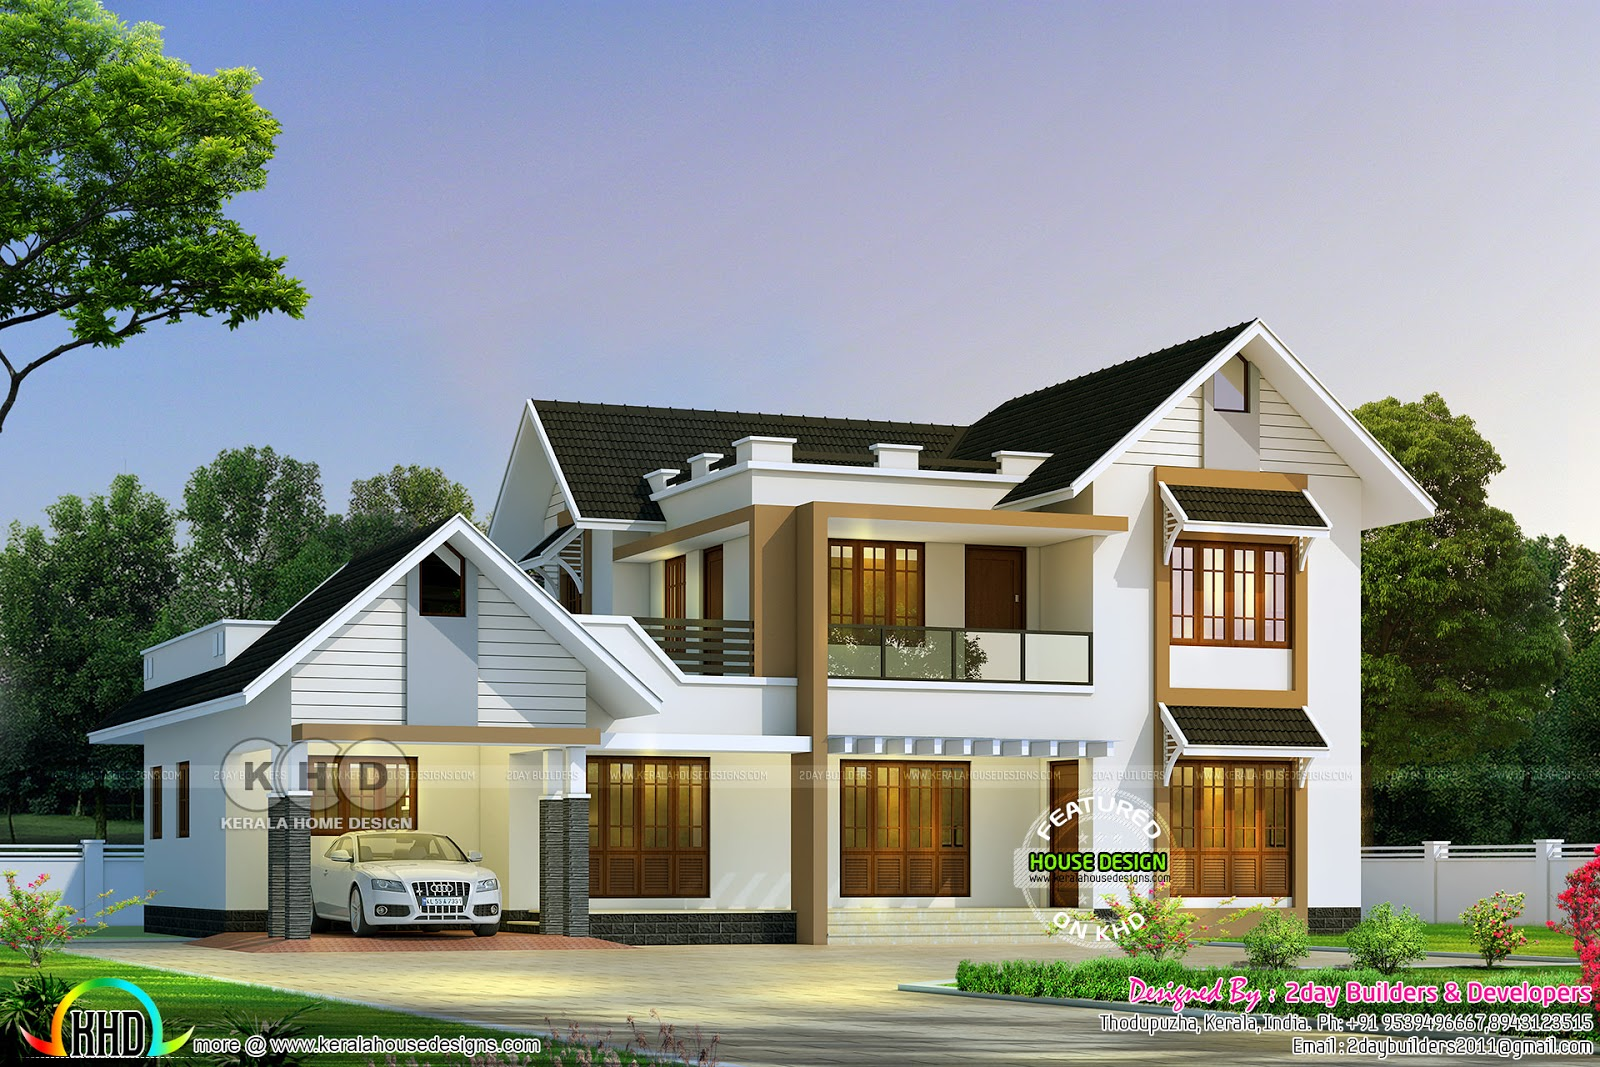 2017 kerala home design and floor plans for Contemporary home floor plans designs